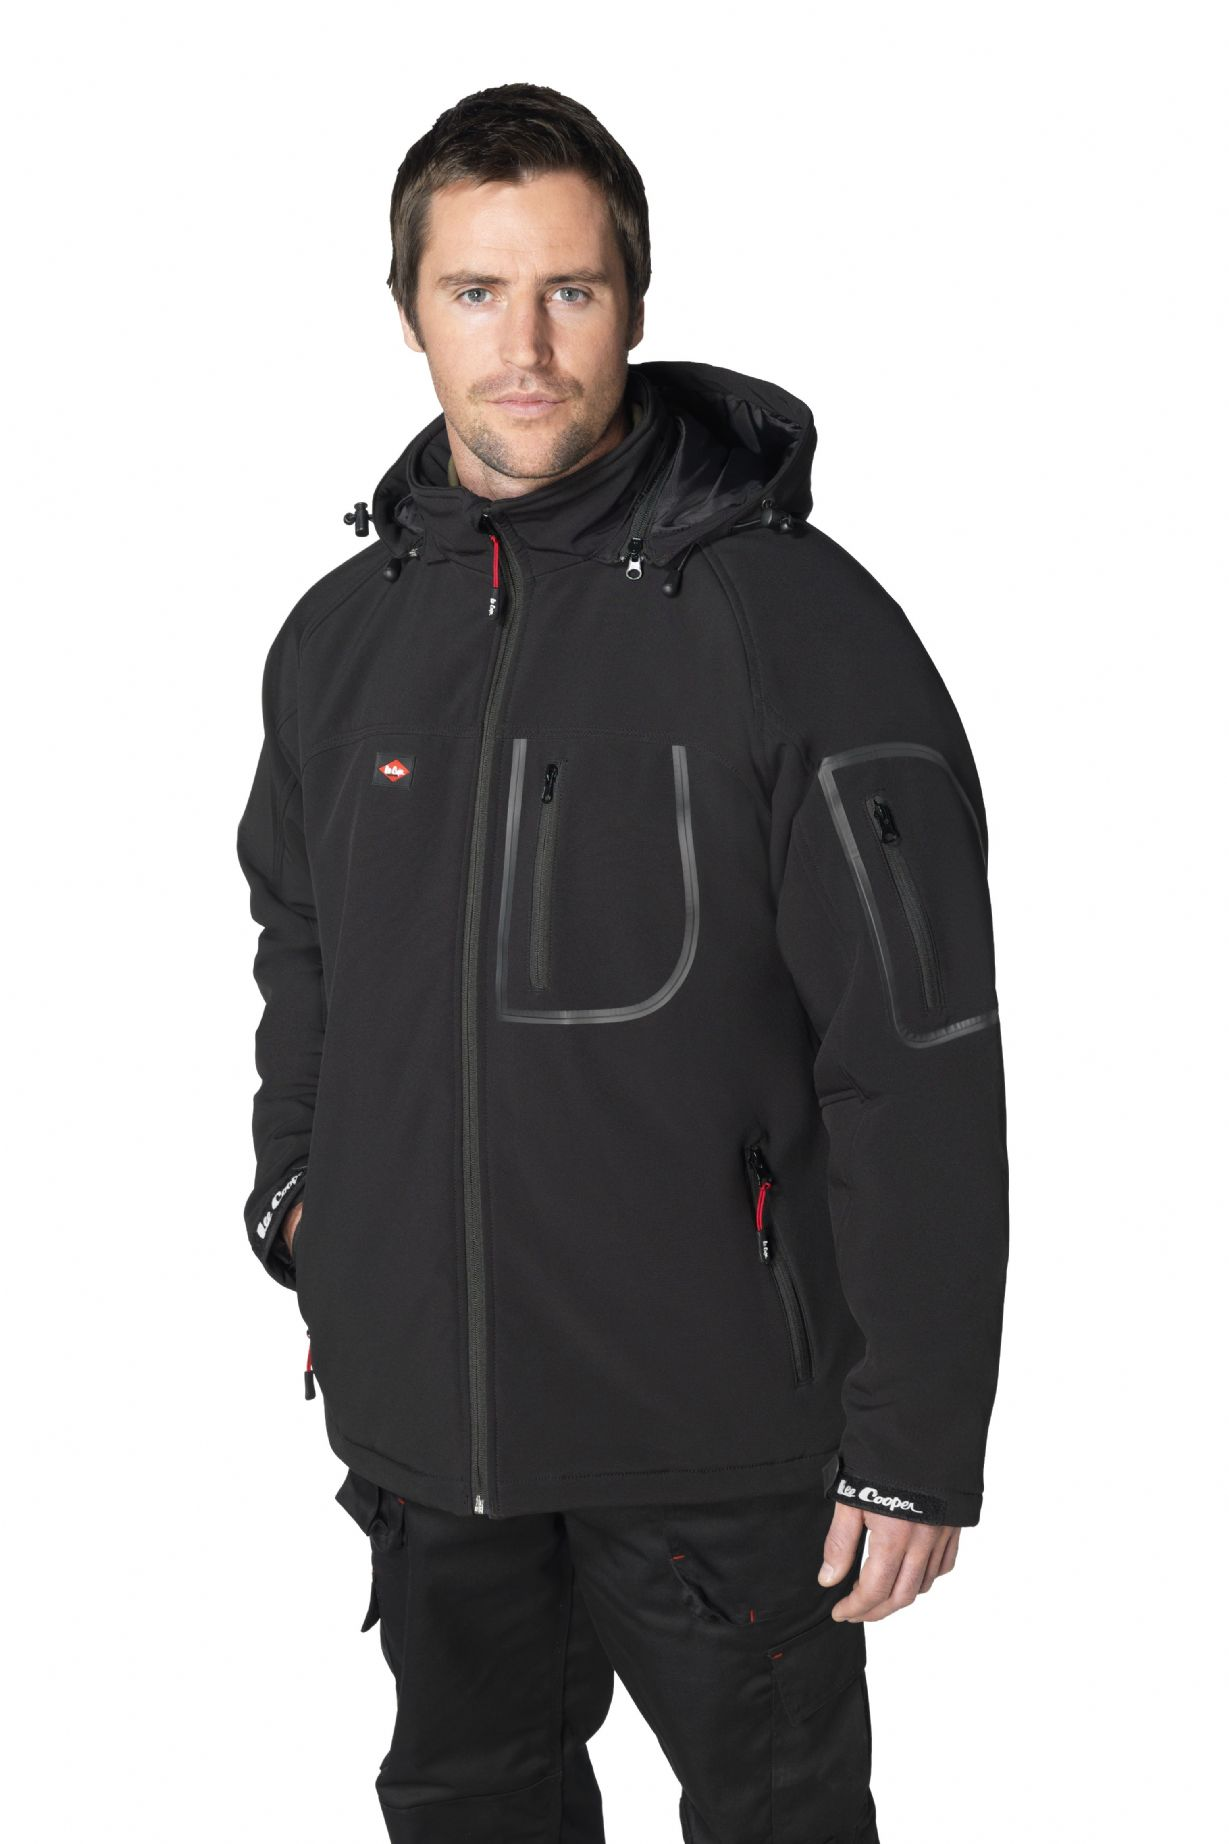 Lee Cooper Waterproof Softshell Jacket LCJKT407W